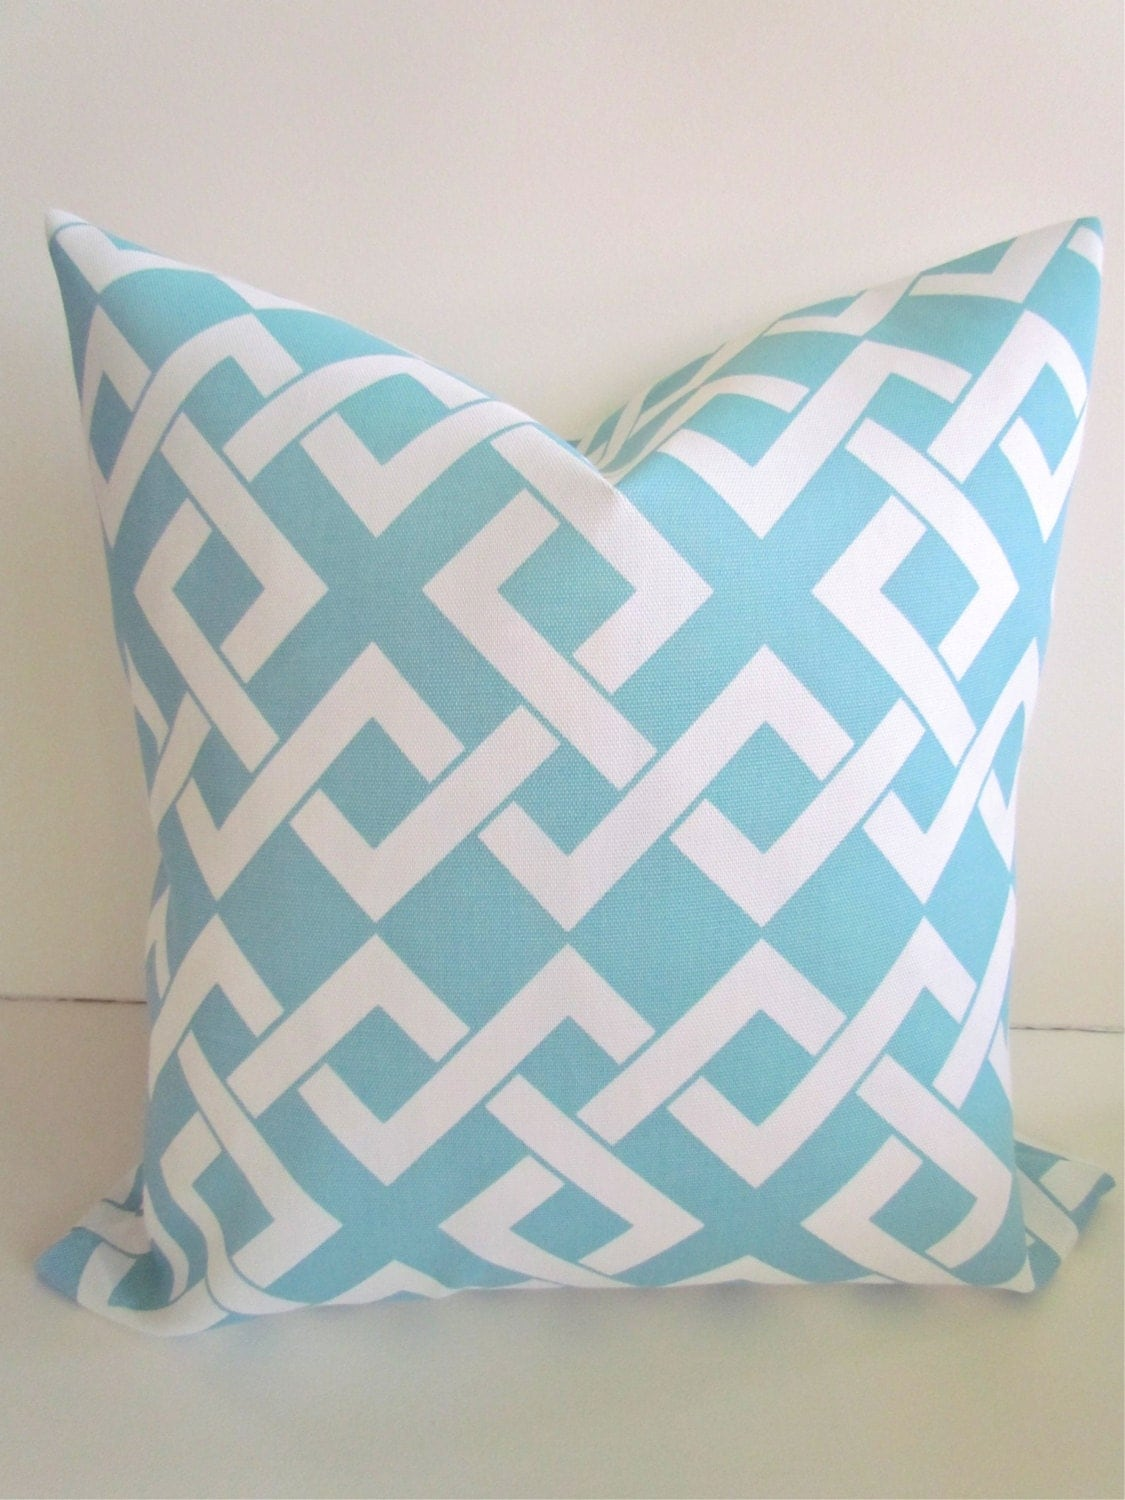 Light Blue Throw Pillow Covers : OUTDOOR PILLOWS Light Blue Throw Pillow Covers Blue Outdoor